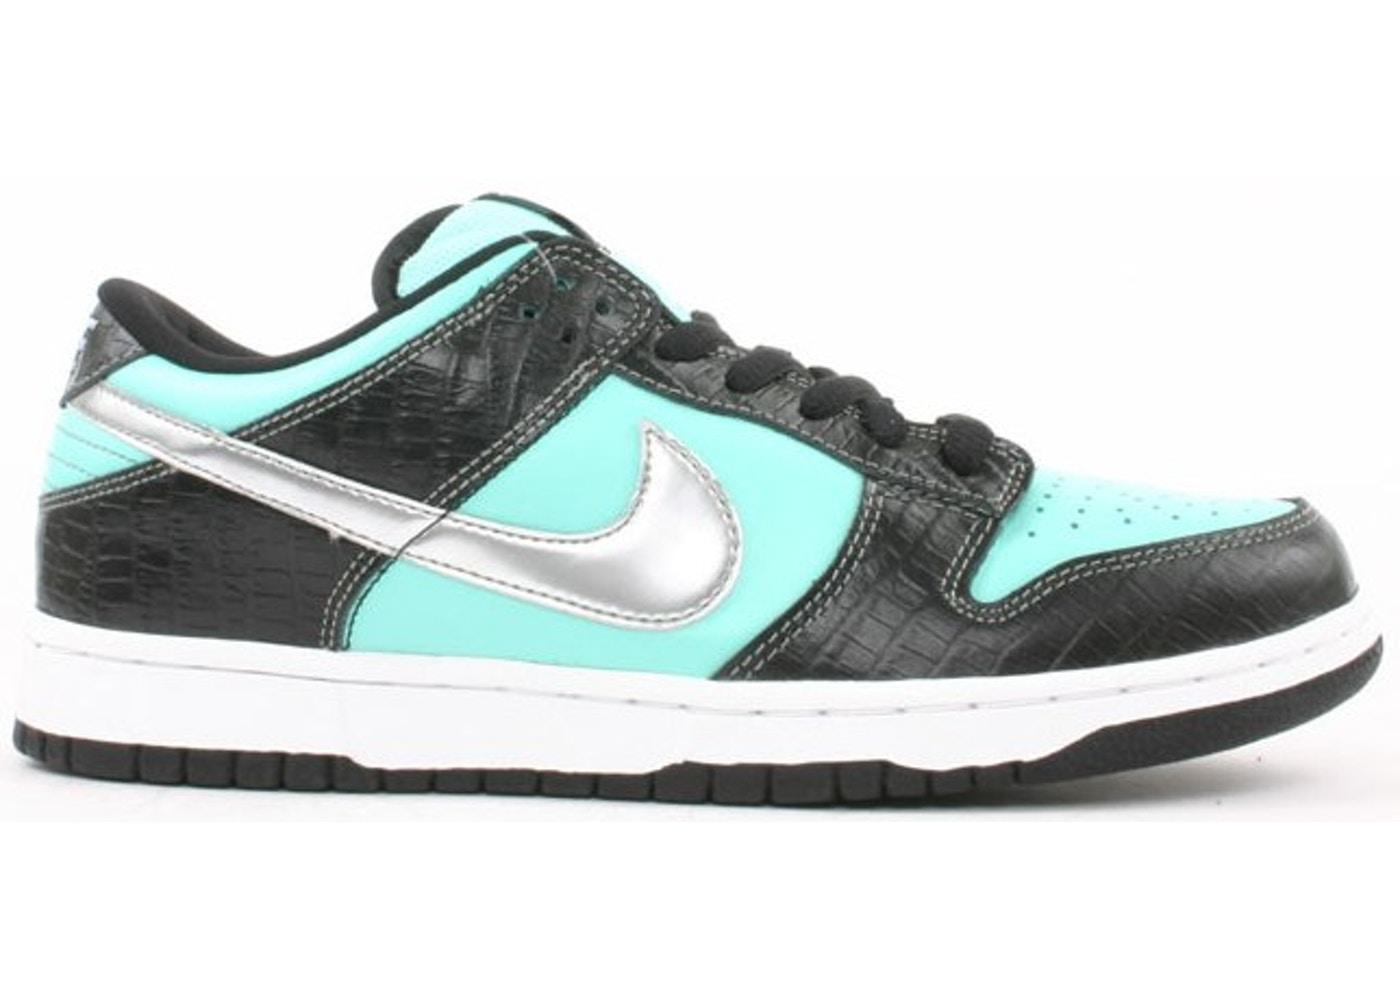 new products e353a 9cea6 Buy Nike SB Shoes   Deadstock Sneakers